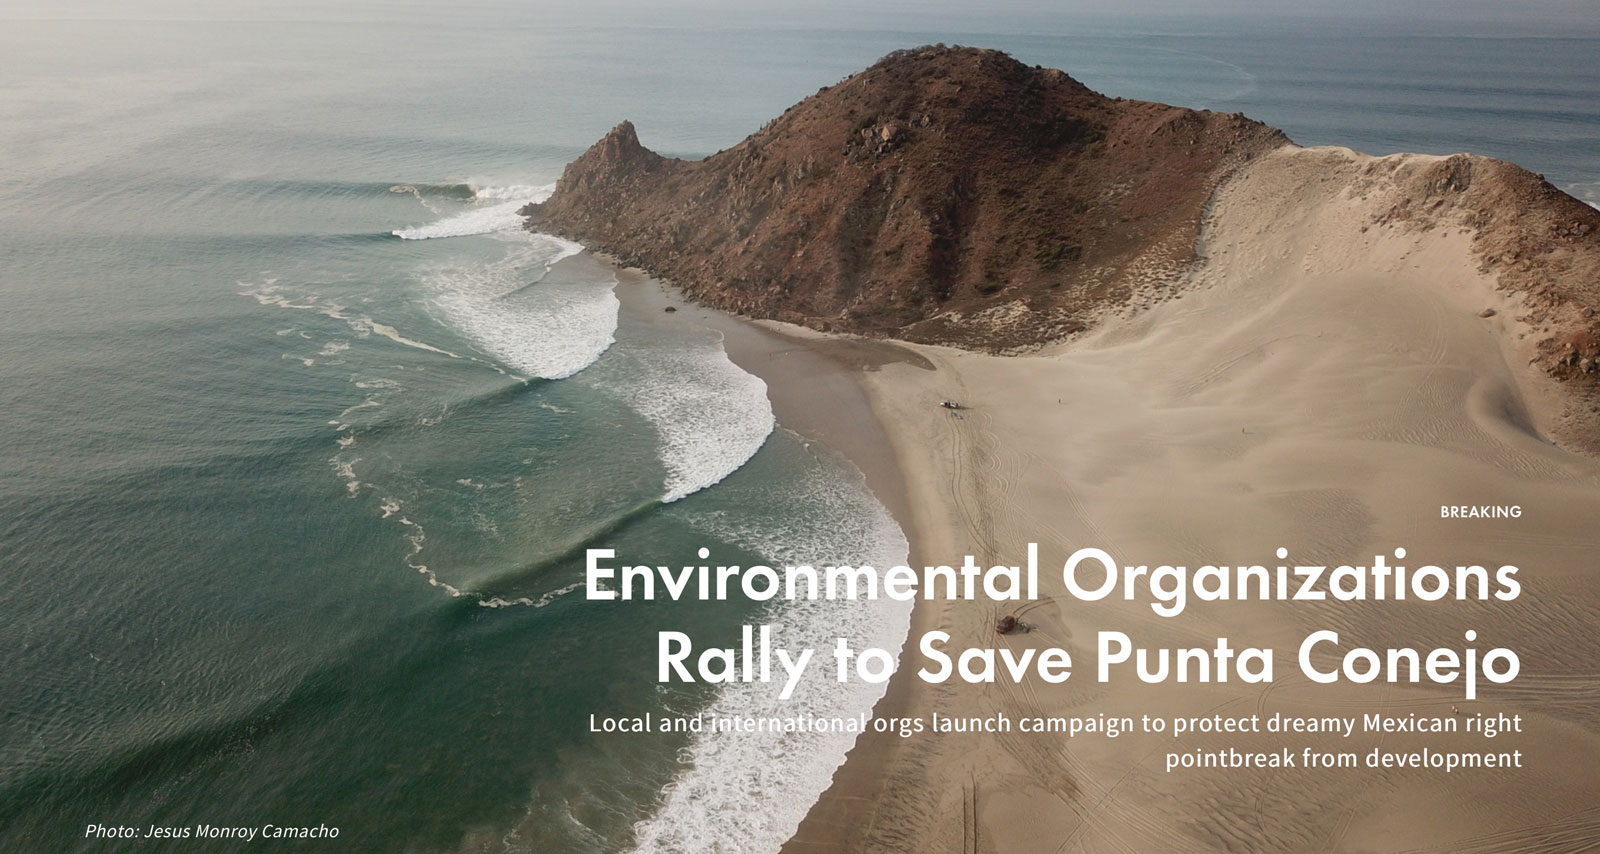 Surfline Save Punta Conejo